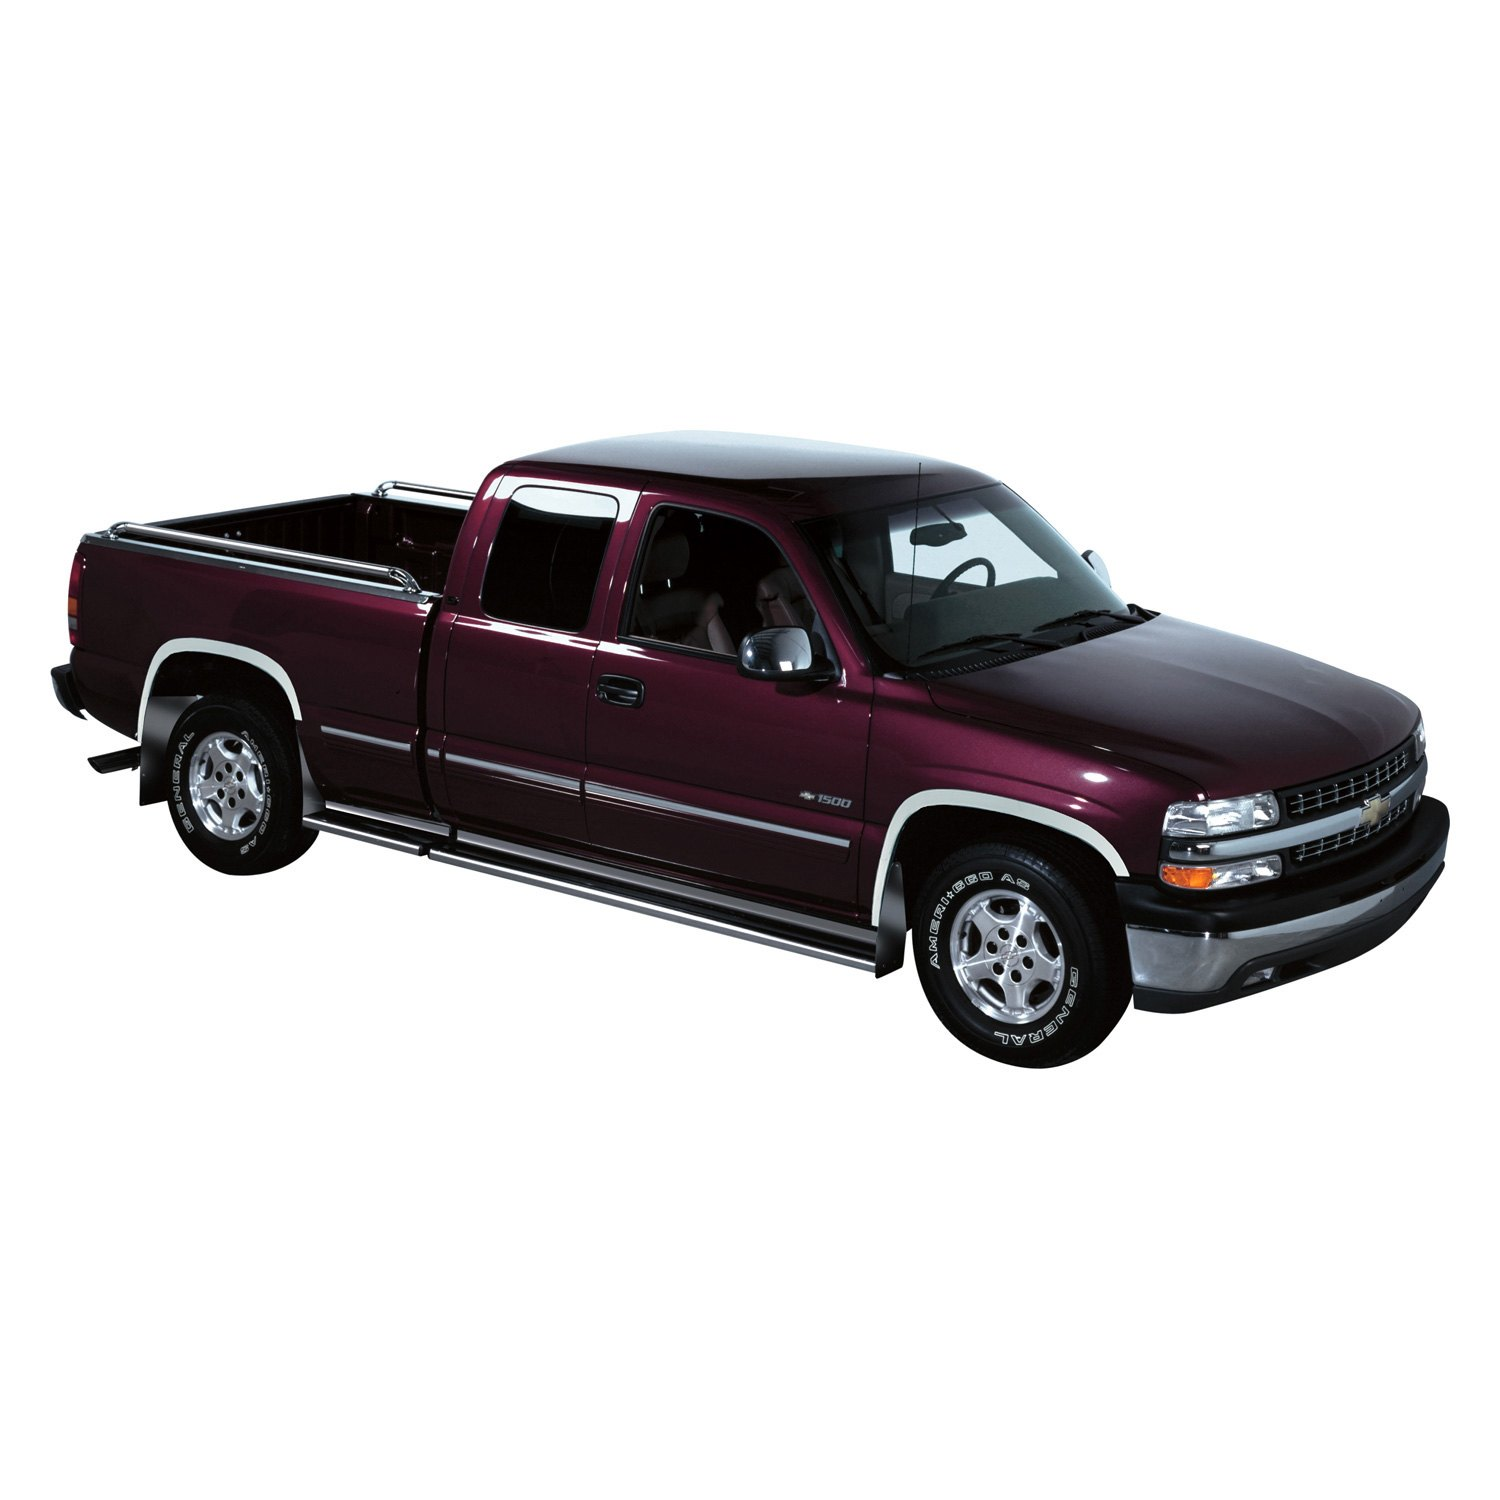 Putco chevy tahoe 1996 polished fender trim for 1996 chevy tahoe interior parts